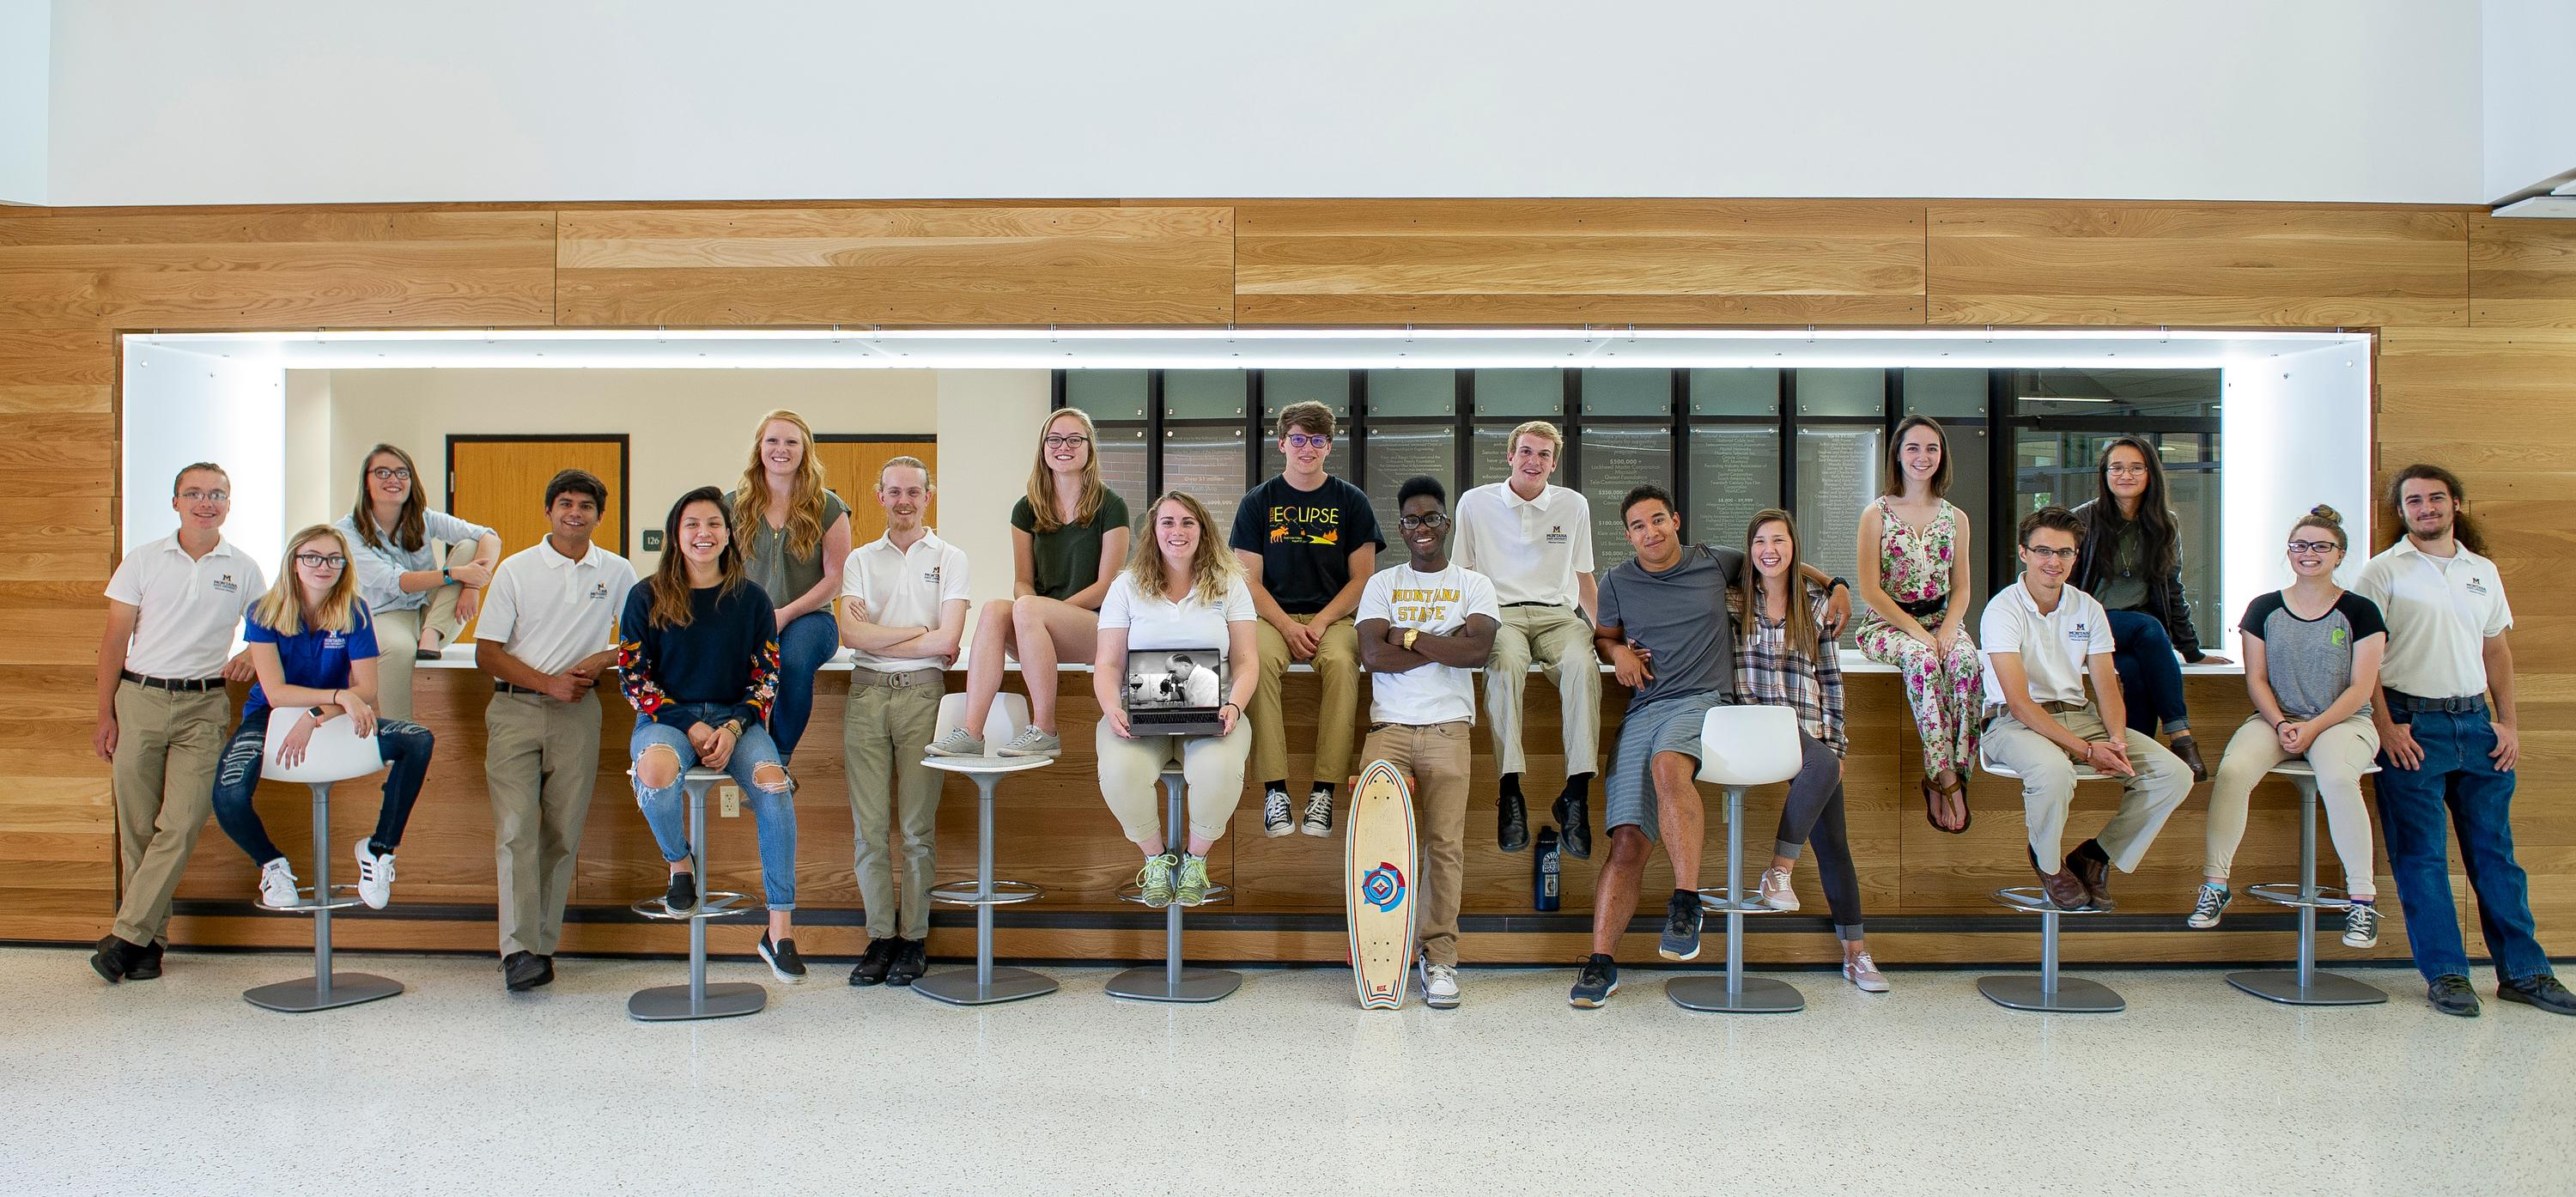 Building a university of hope - MSU Hilleman Scholars Program Featured in Mountains & Minds